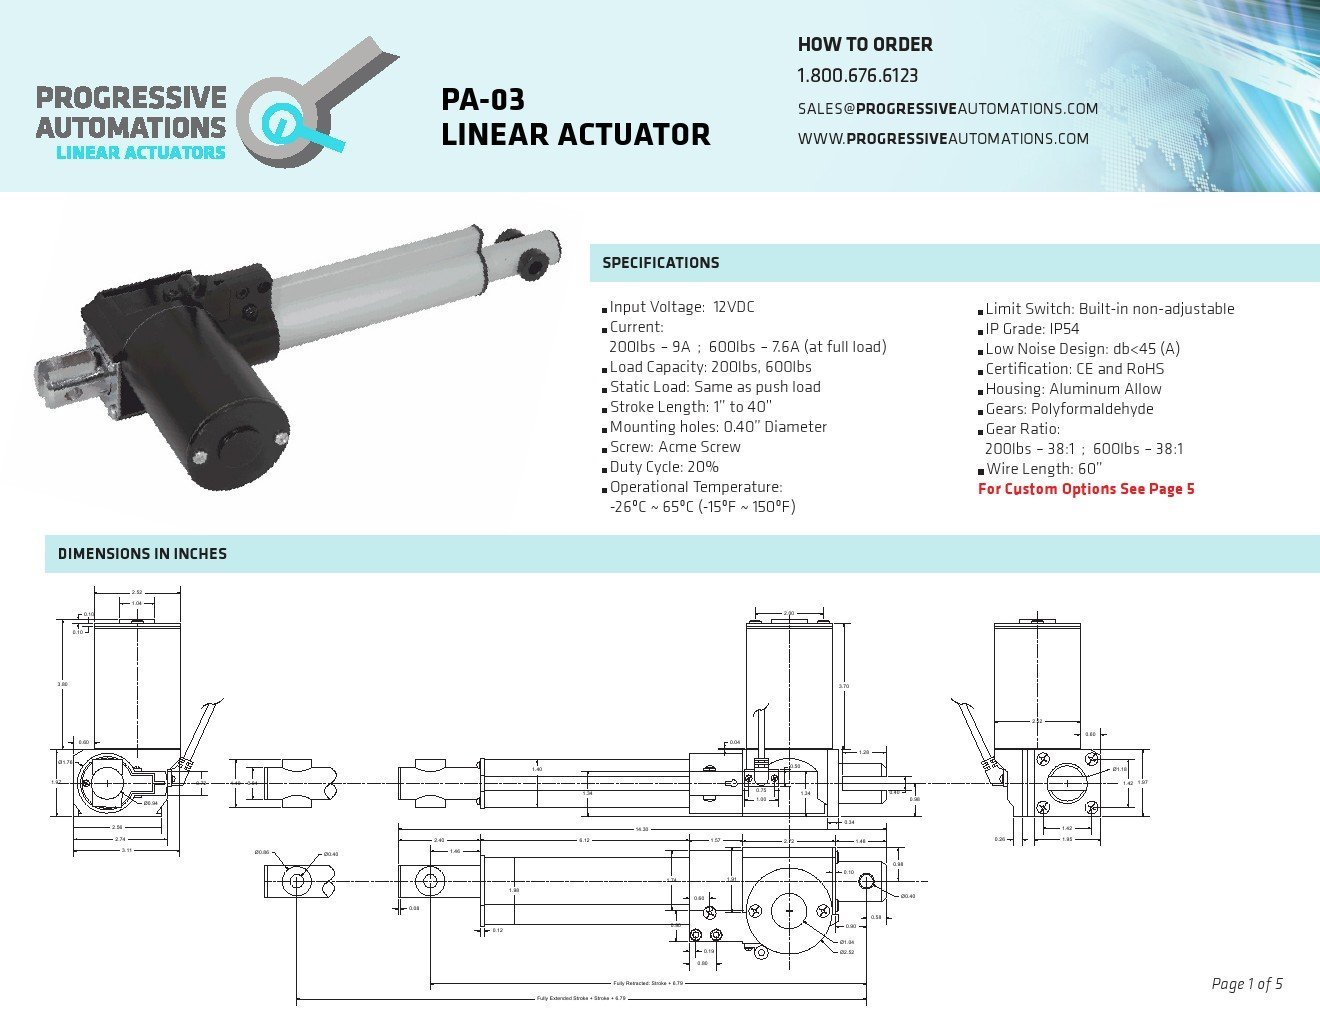 Pa 03 Linear Actuator Wiring Diagram Schematics Progressive Automations Stroke Size 6 Force 200 Controller